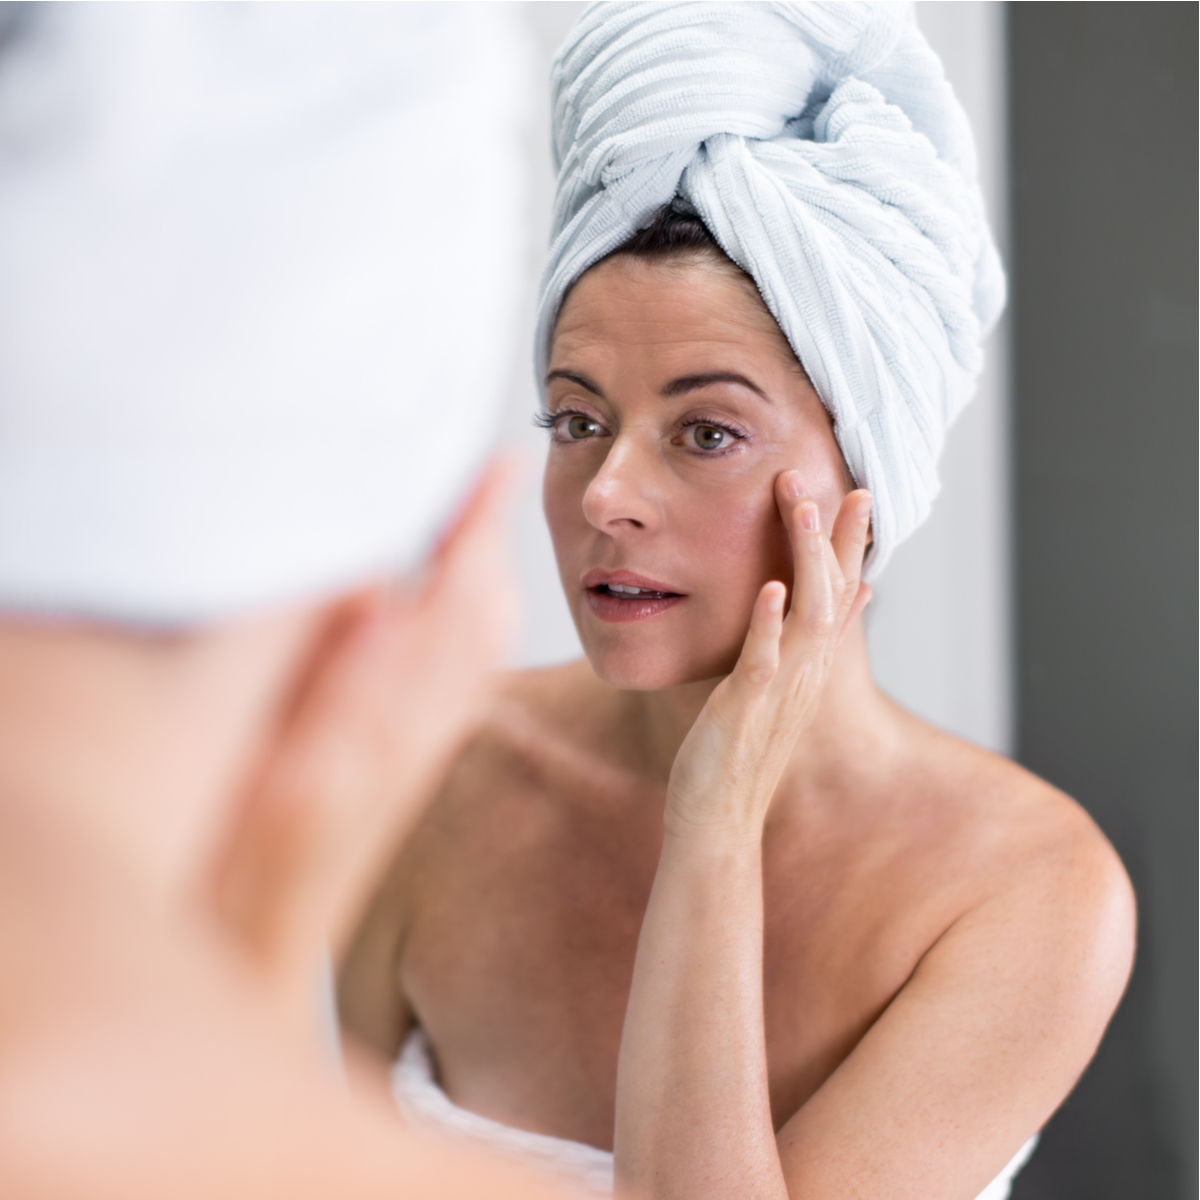 Hyperpigmentation vs Acne Scars: The Difference And What To Do